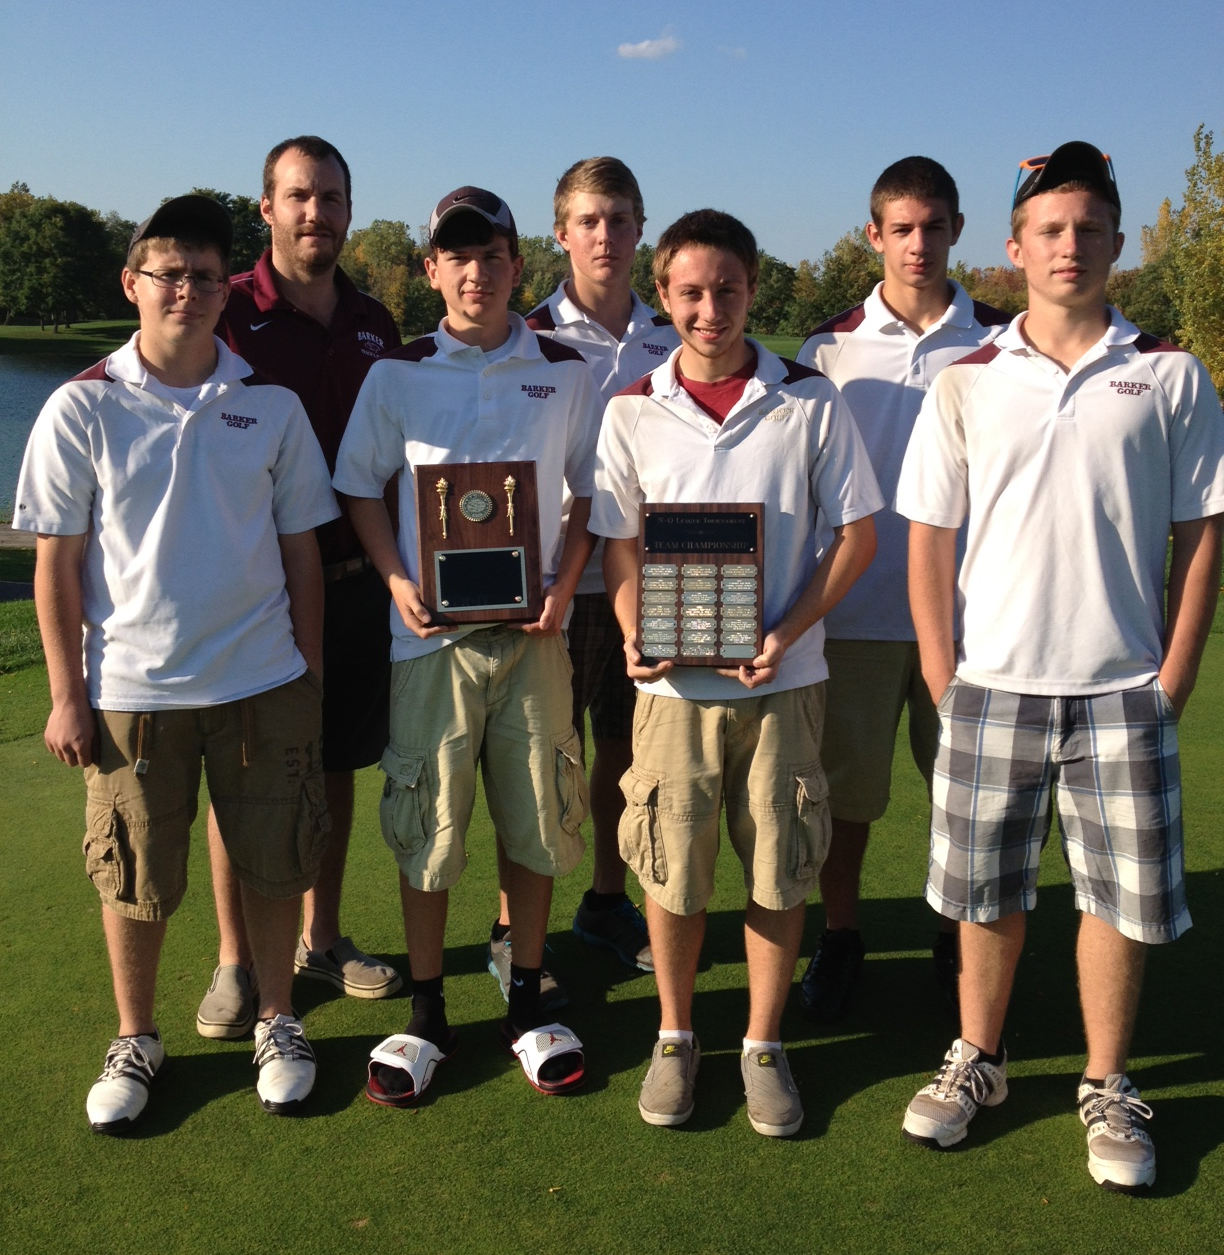 2012 NO League Golf Champions